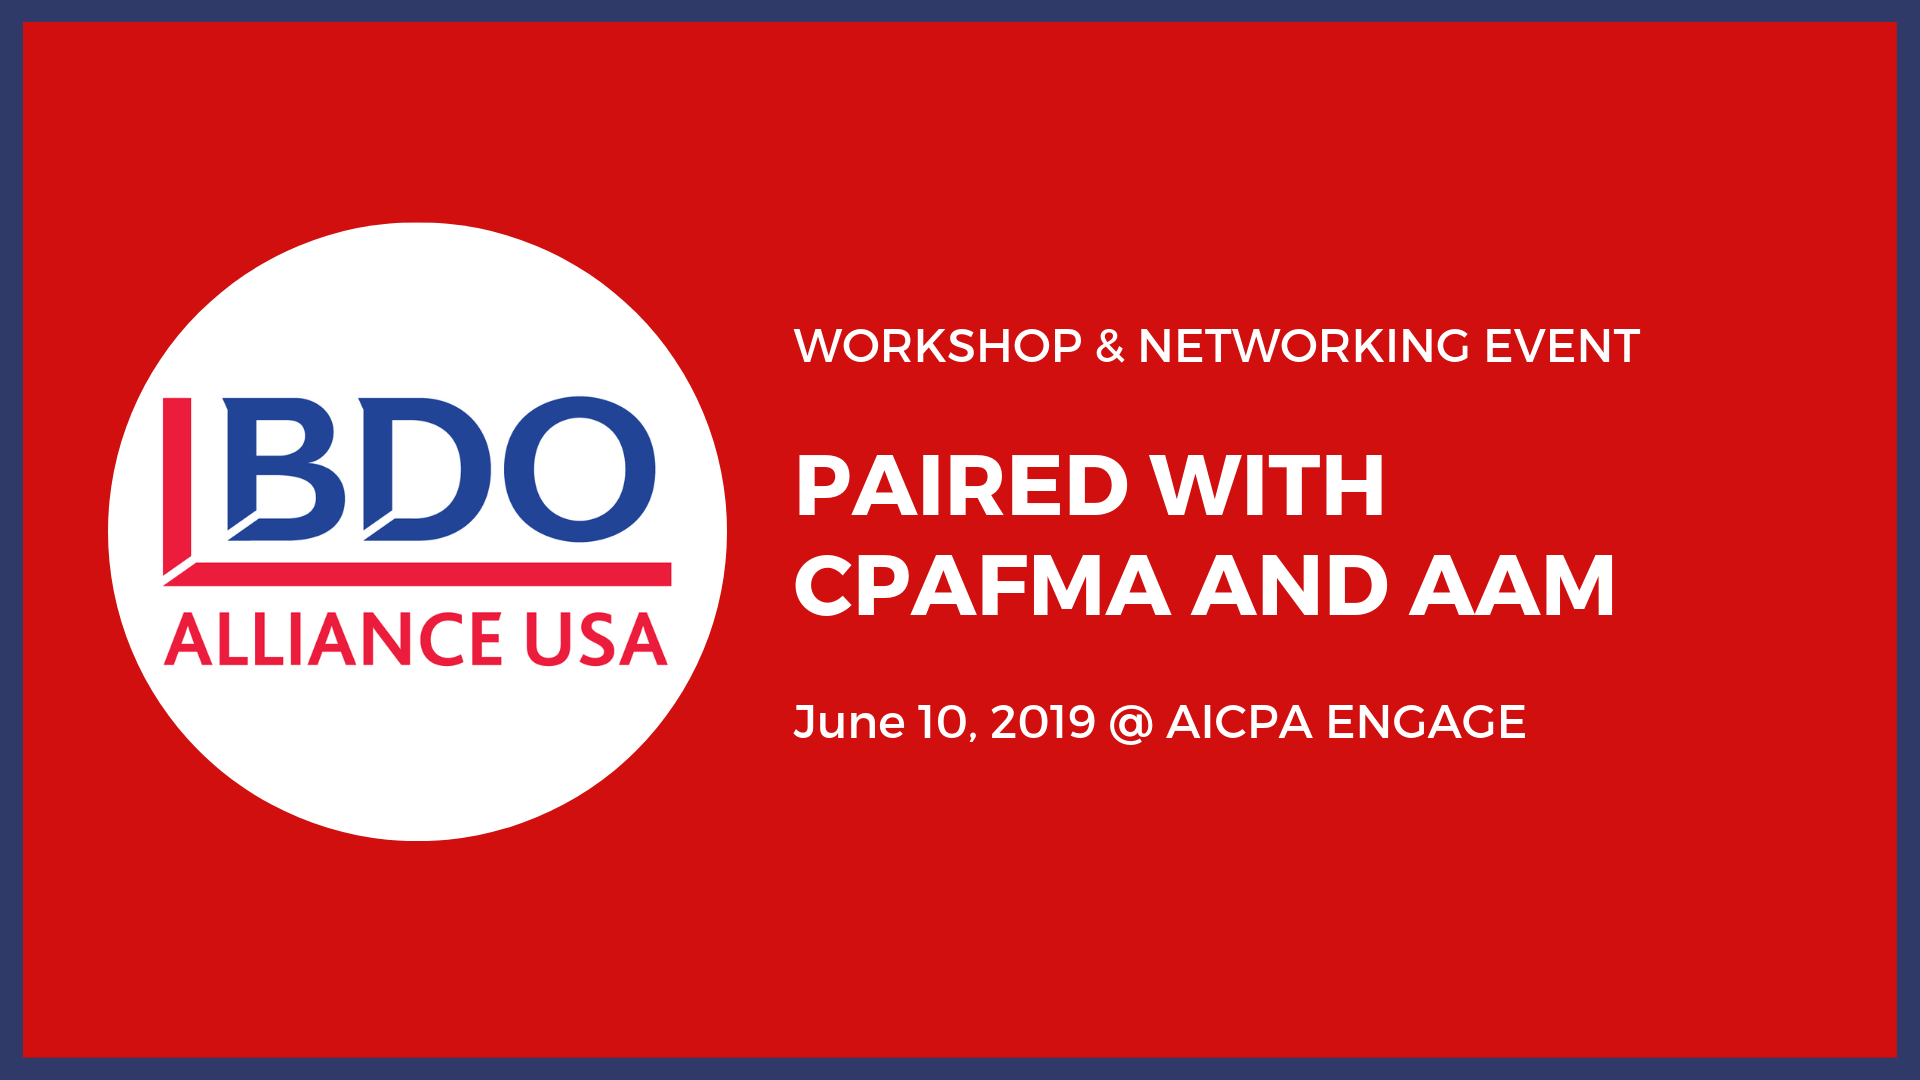 BDO Alliance Workshop and Networking Event Held with CPAFMA National Practice Management Conference